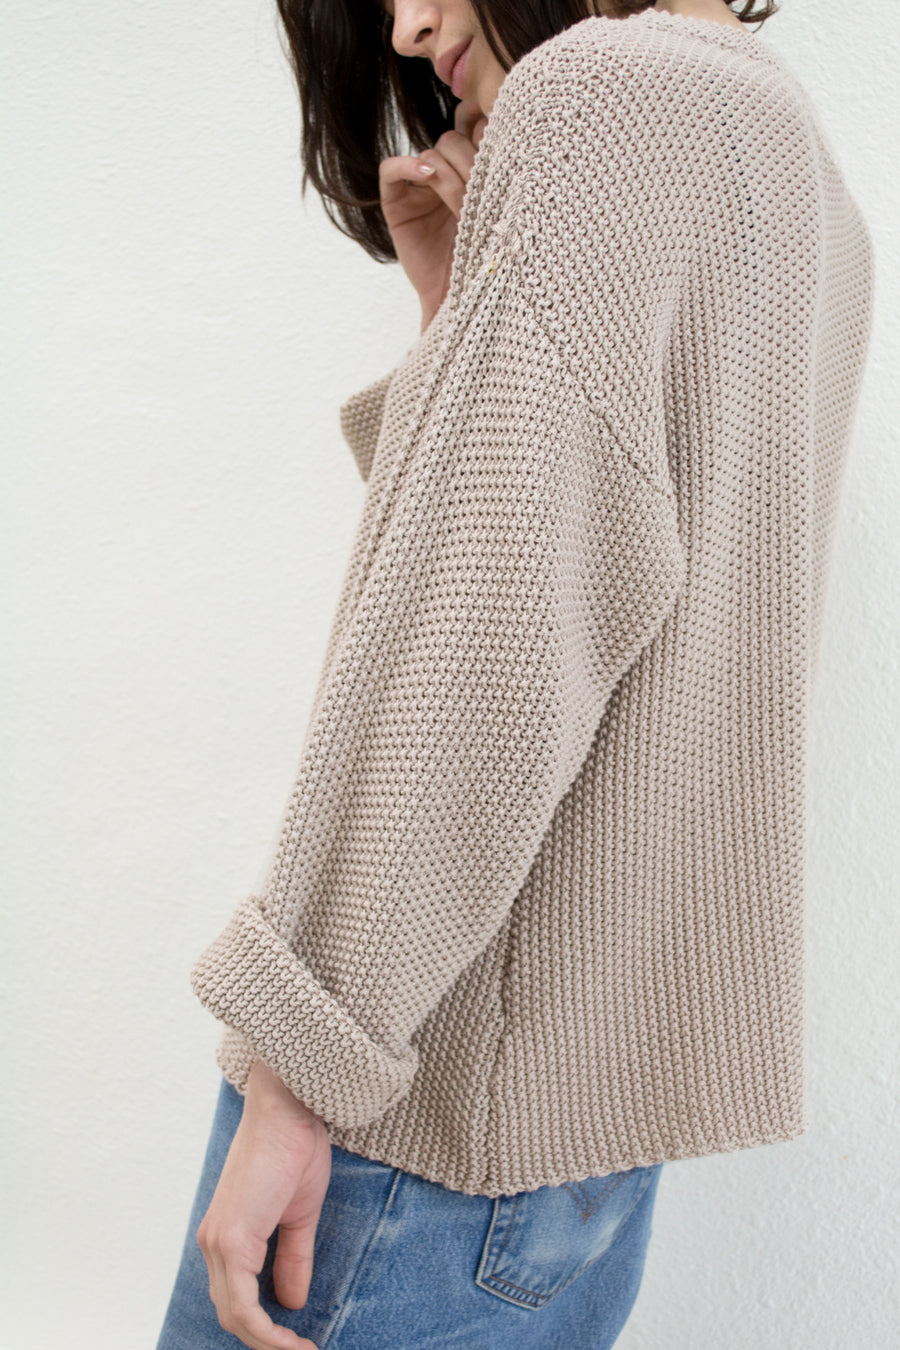 Oat Seed Sweater